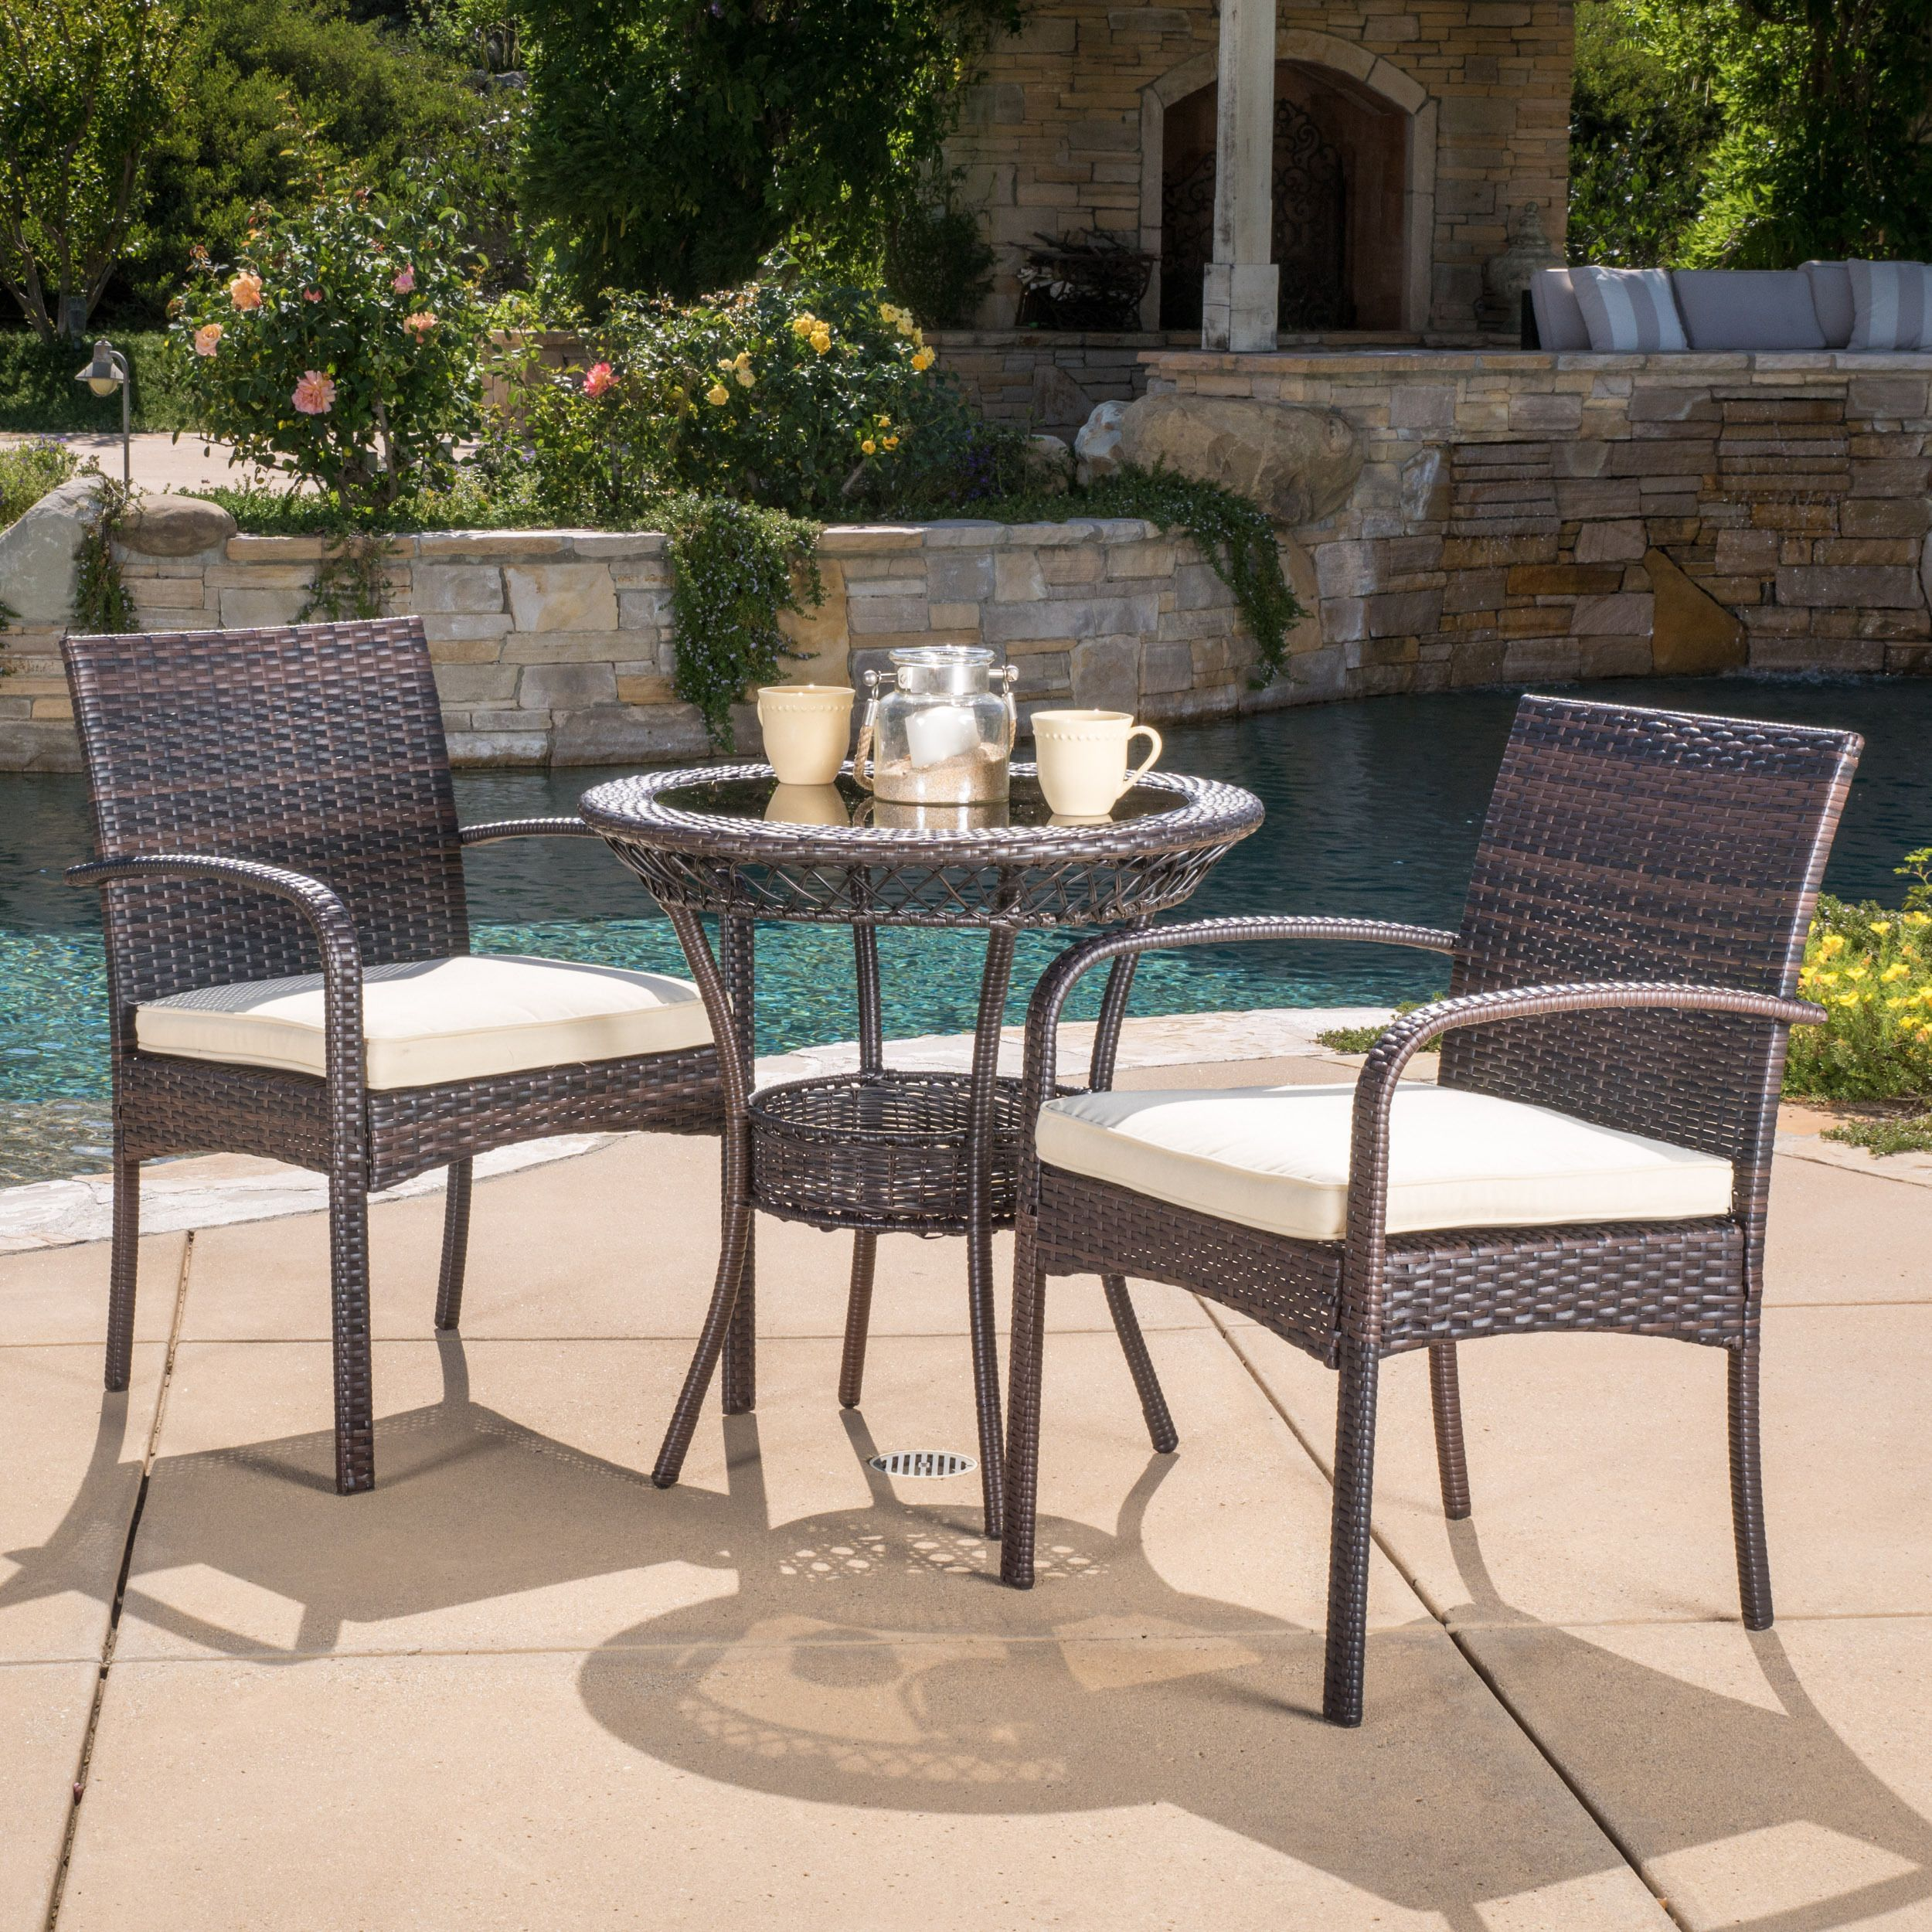 Relish the outdoors with a set just as unique as your outdoor patio ...